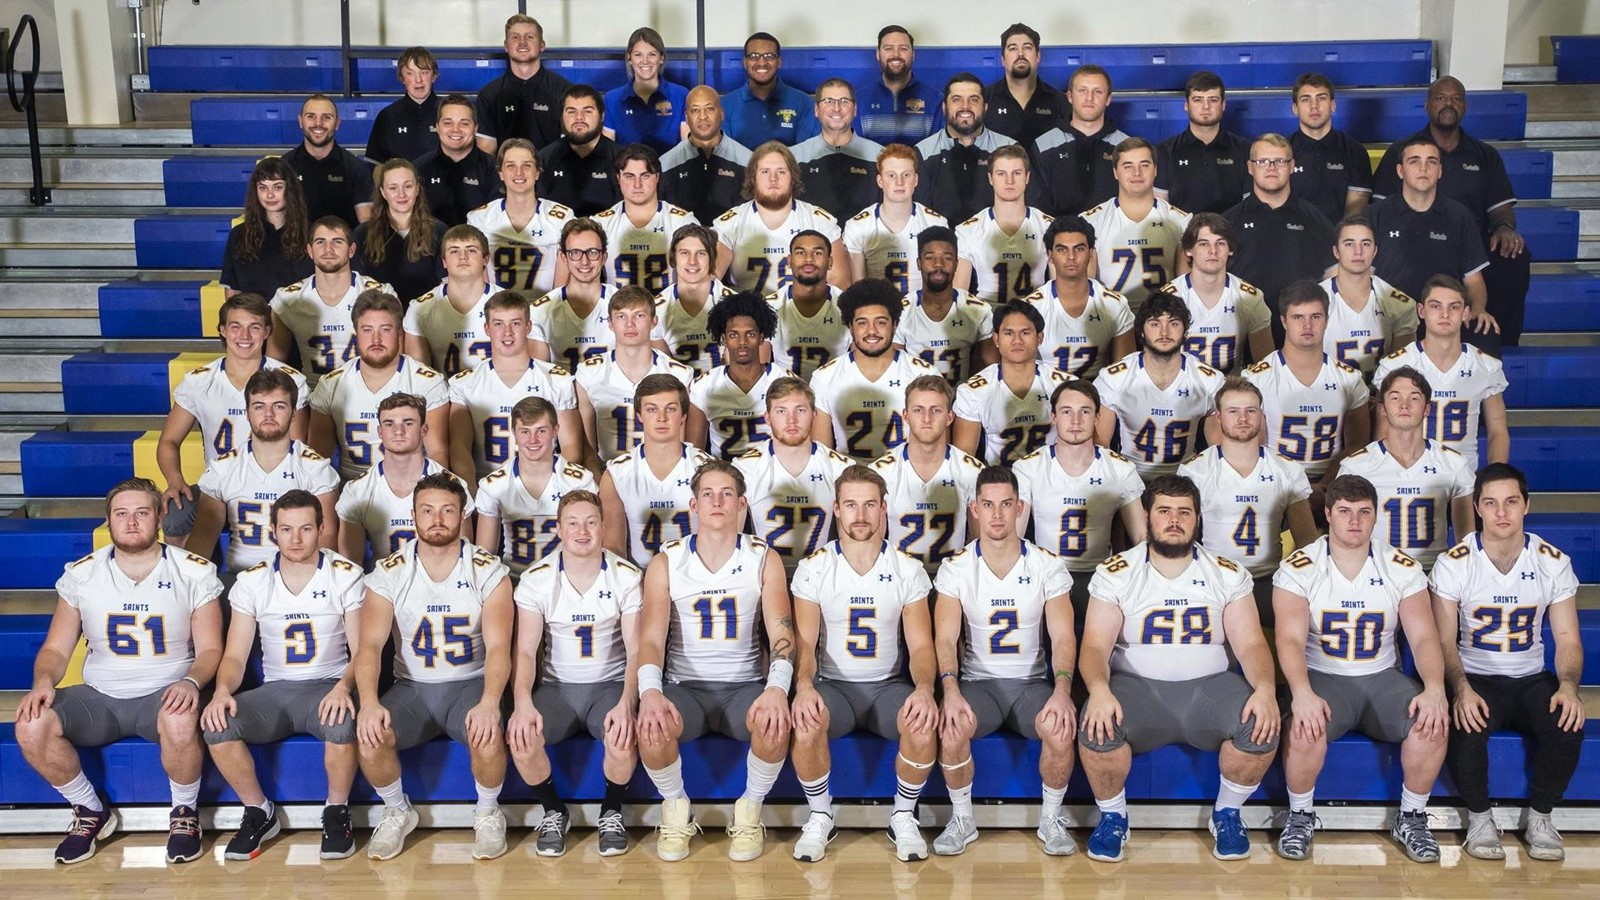 2019 Football Roster The College Of St Scholastica Athletics